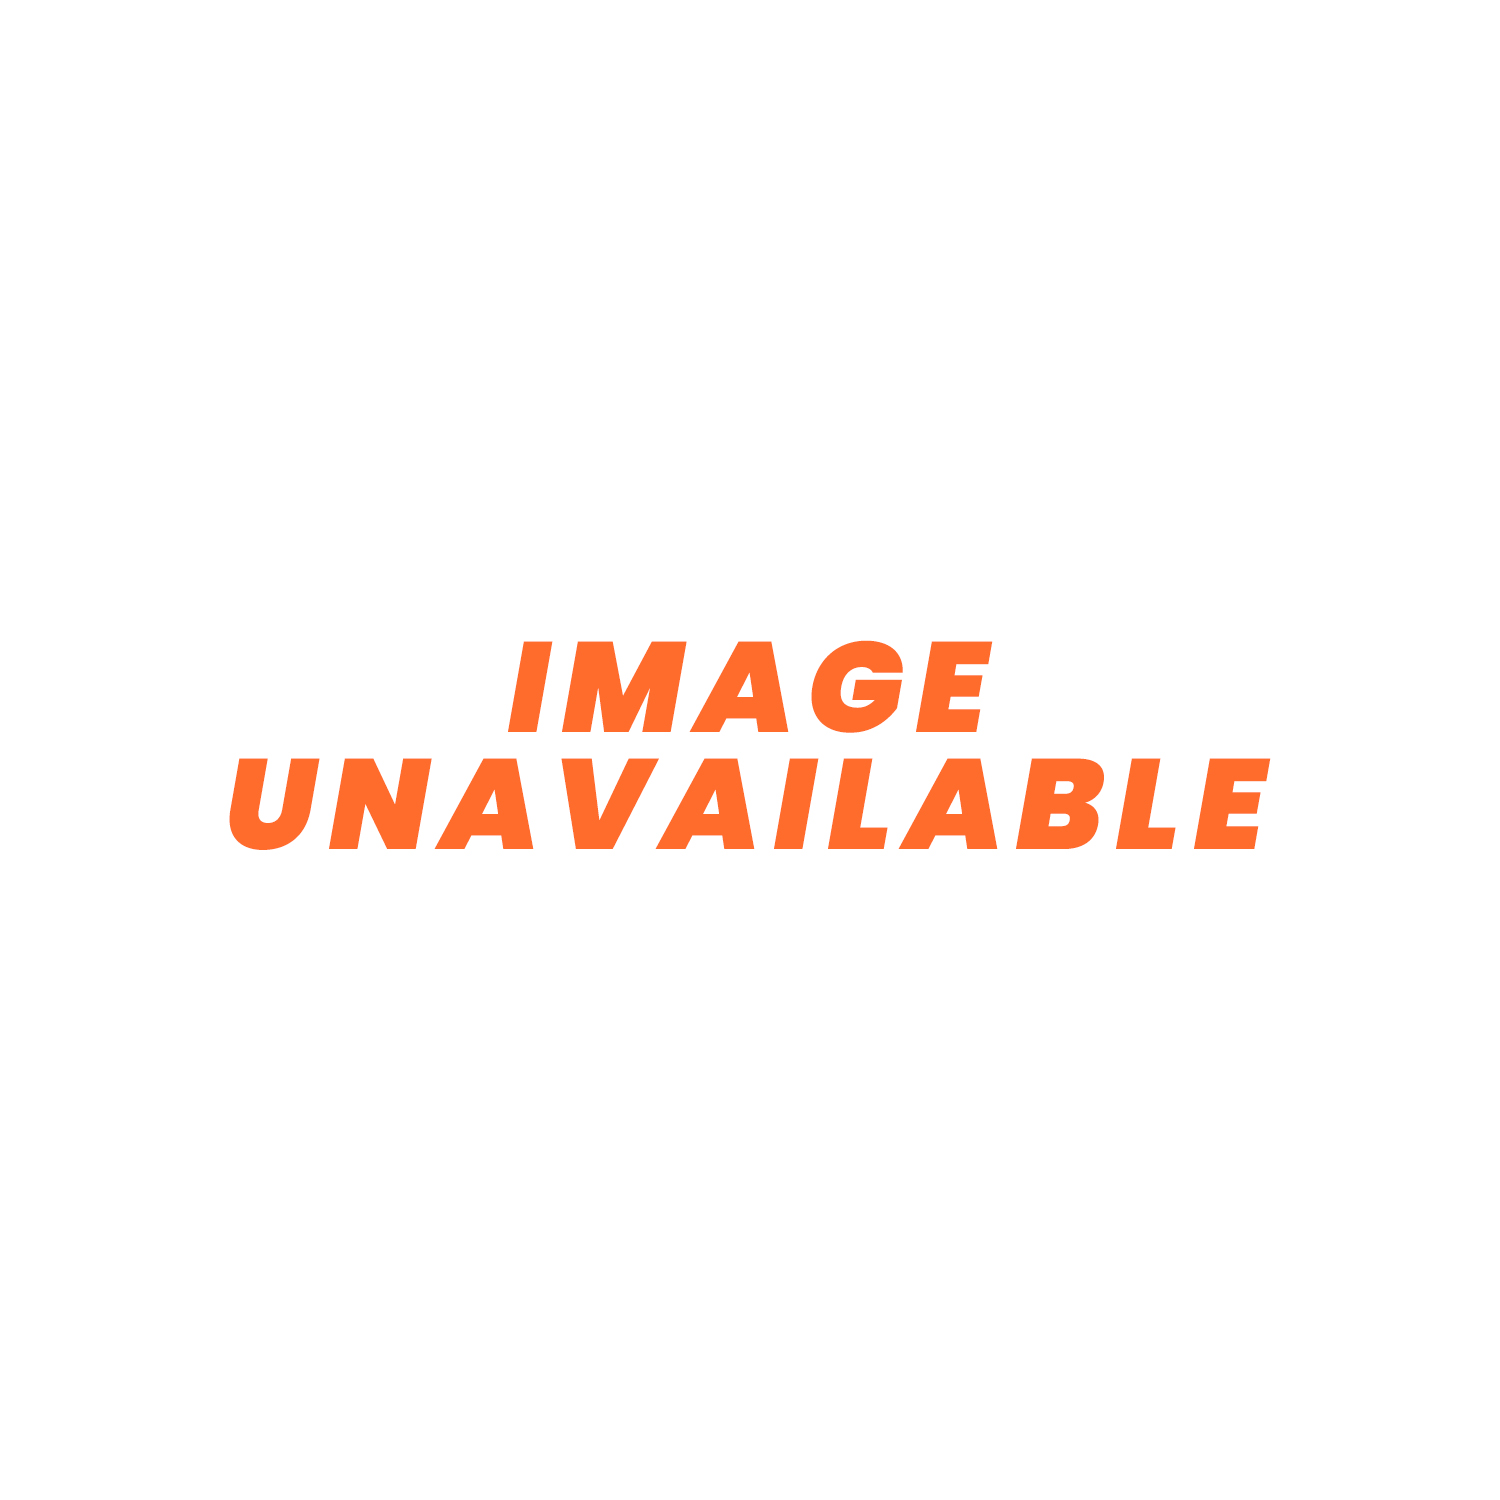 Engine Pre-Heater Kit 230v 2kw 80c (Calix Engine Pre-Heater Kits) Whats included